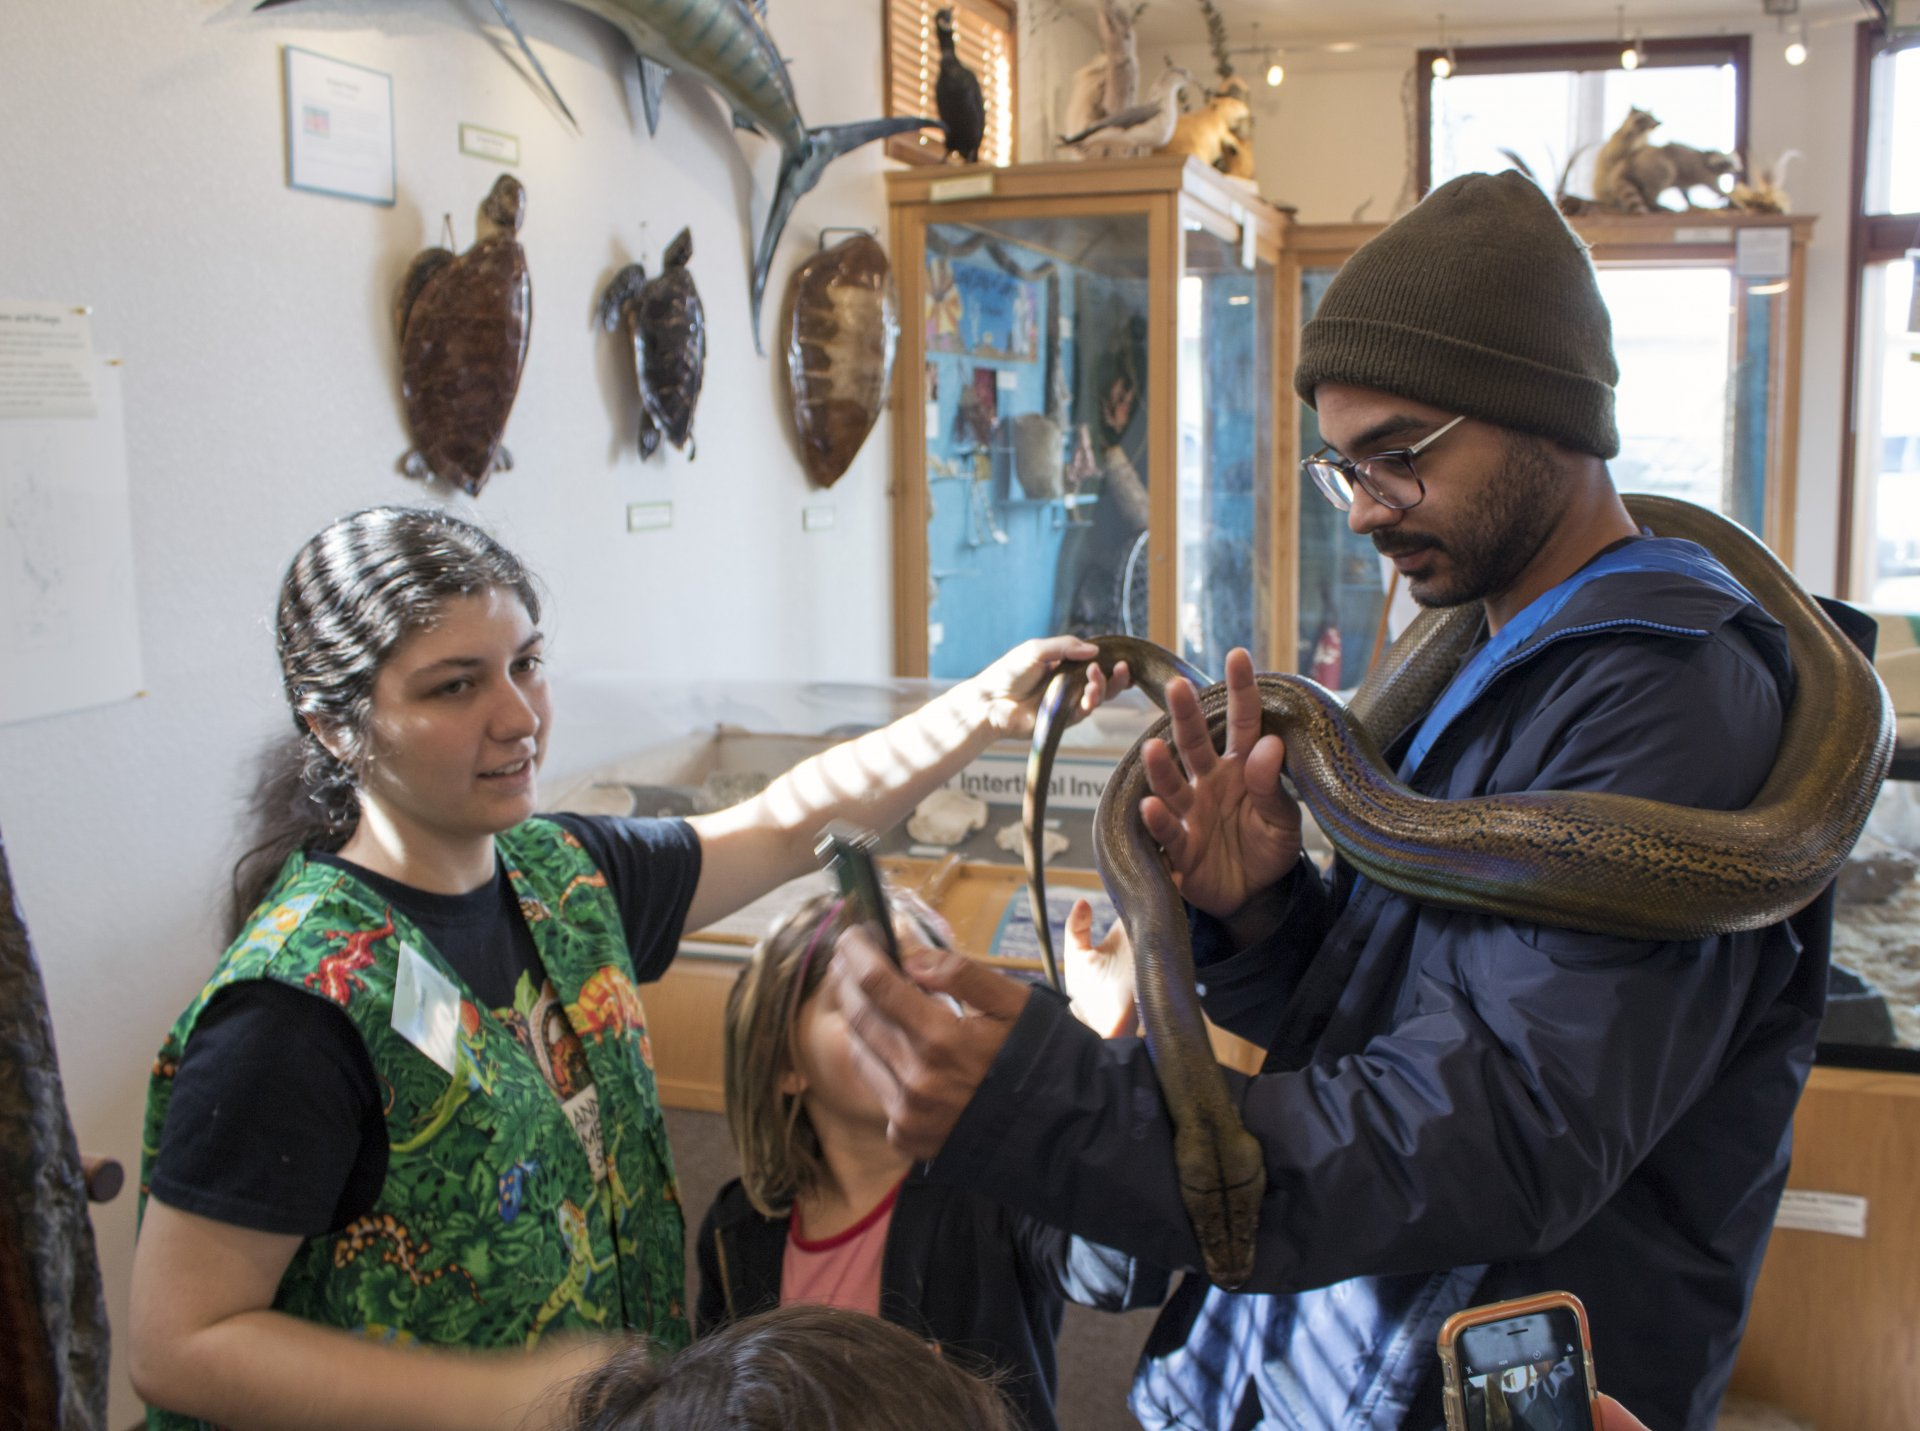 HSU student Taylor Sweet (left) with visitors at the HSU Natural History Museum in Arcata on March 3. Photo by Kyle Orr.